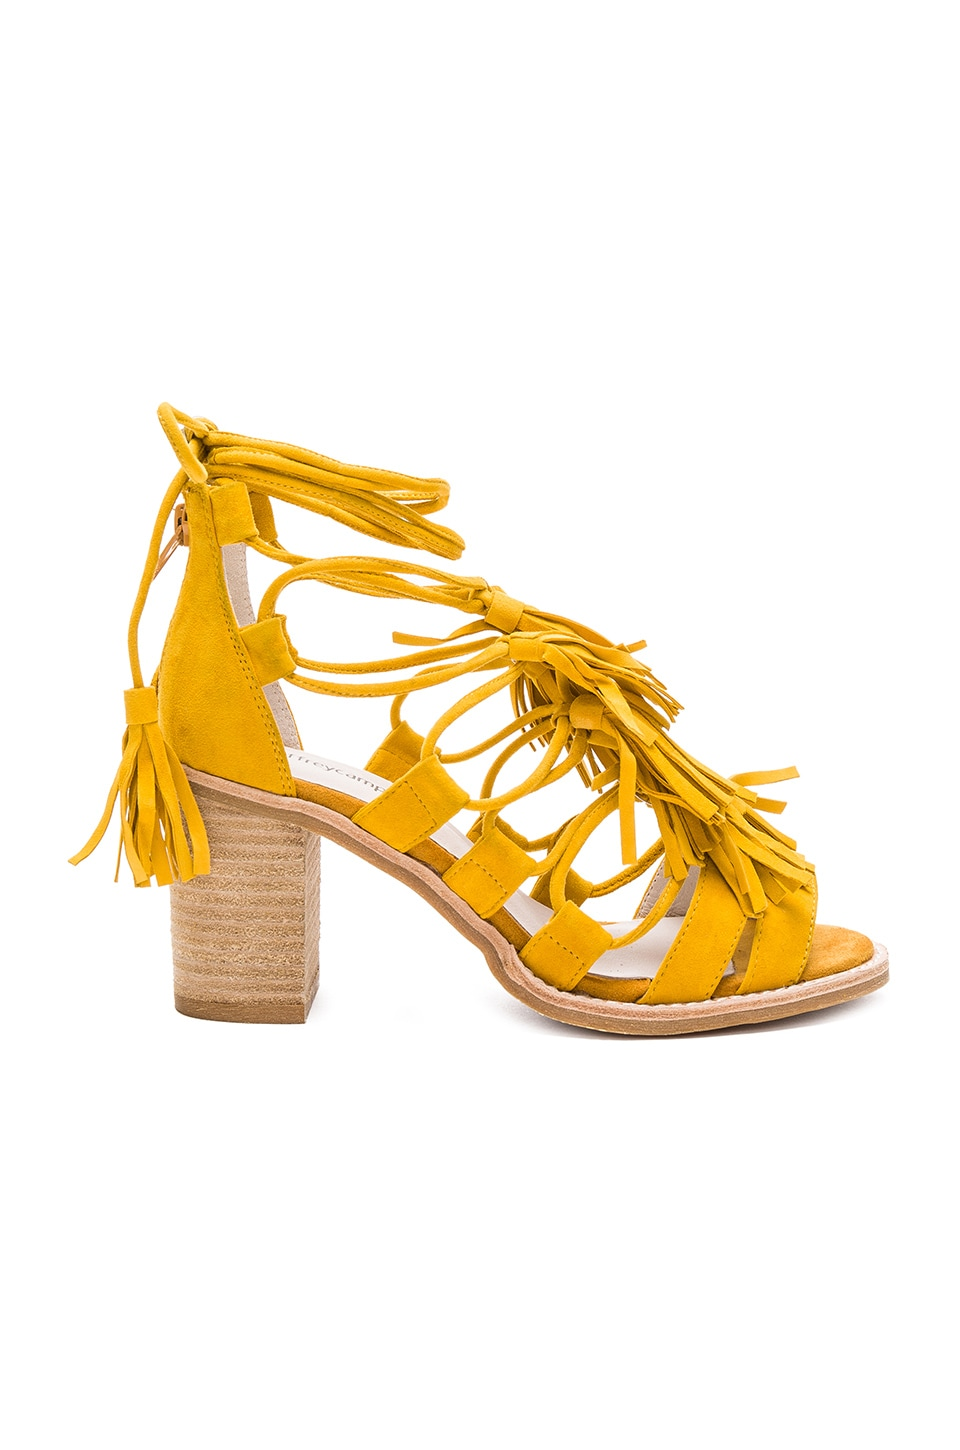 Jeffrey Campbell Linares Sandal in Mustard Suede